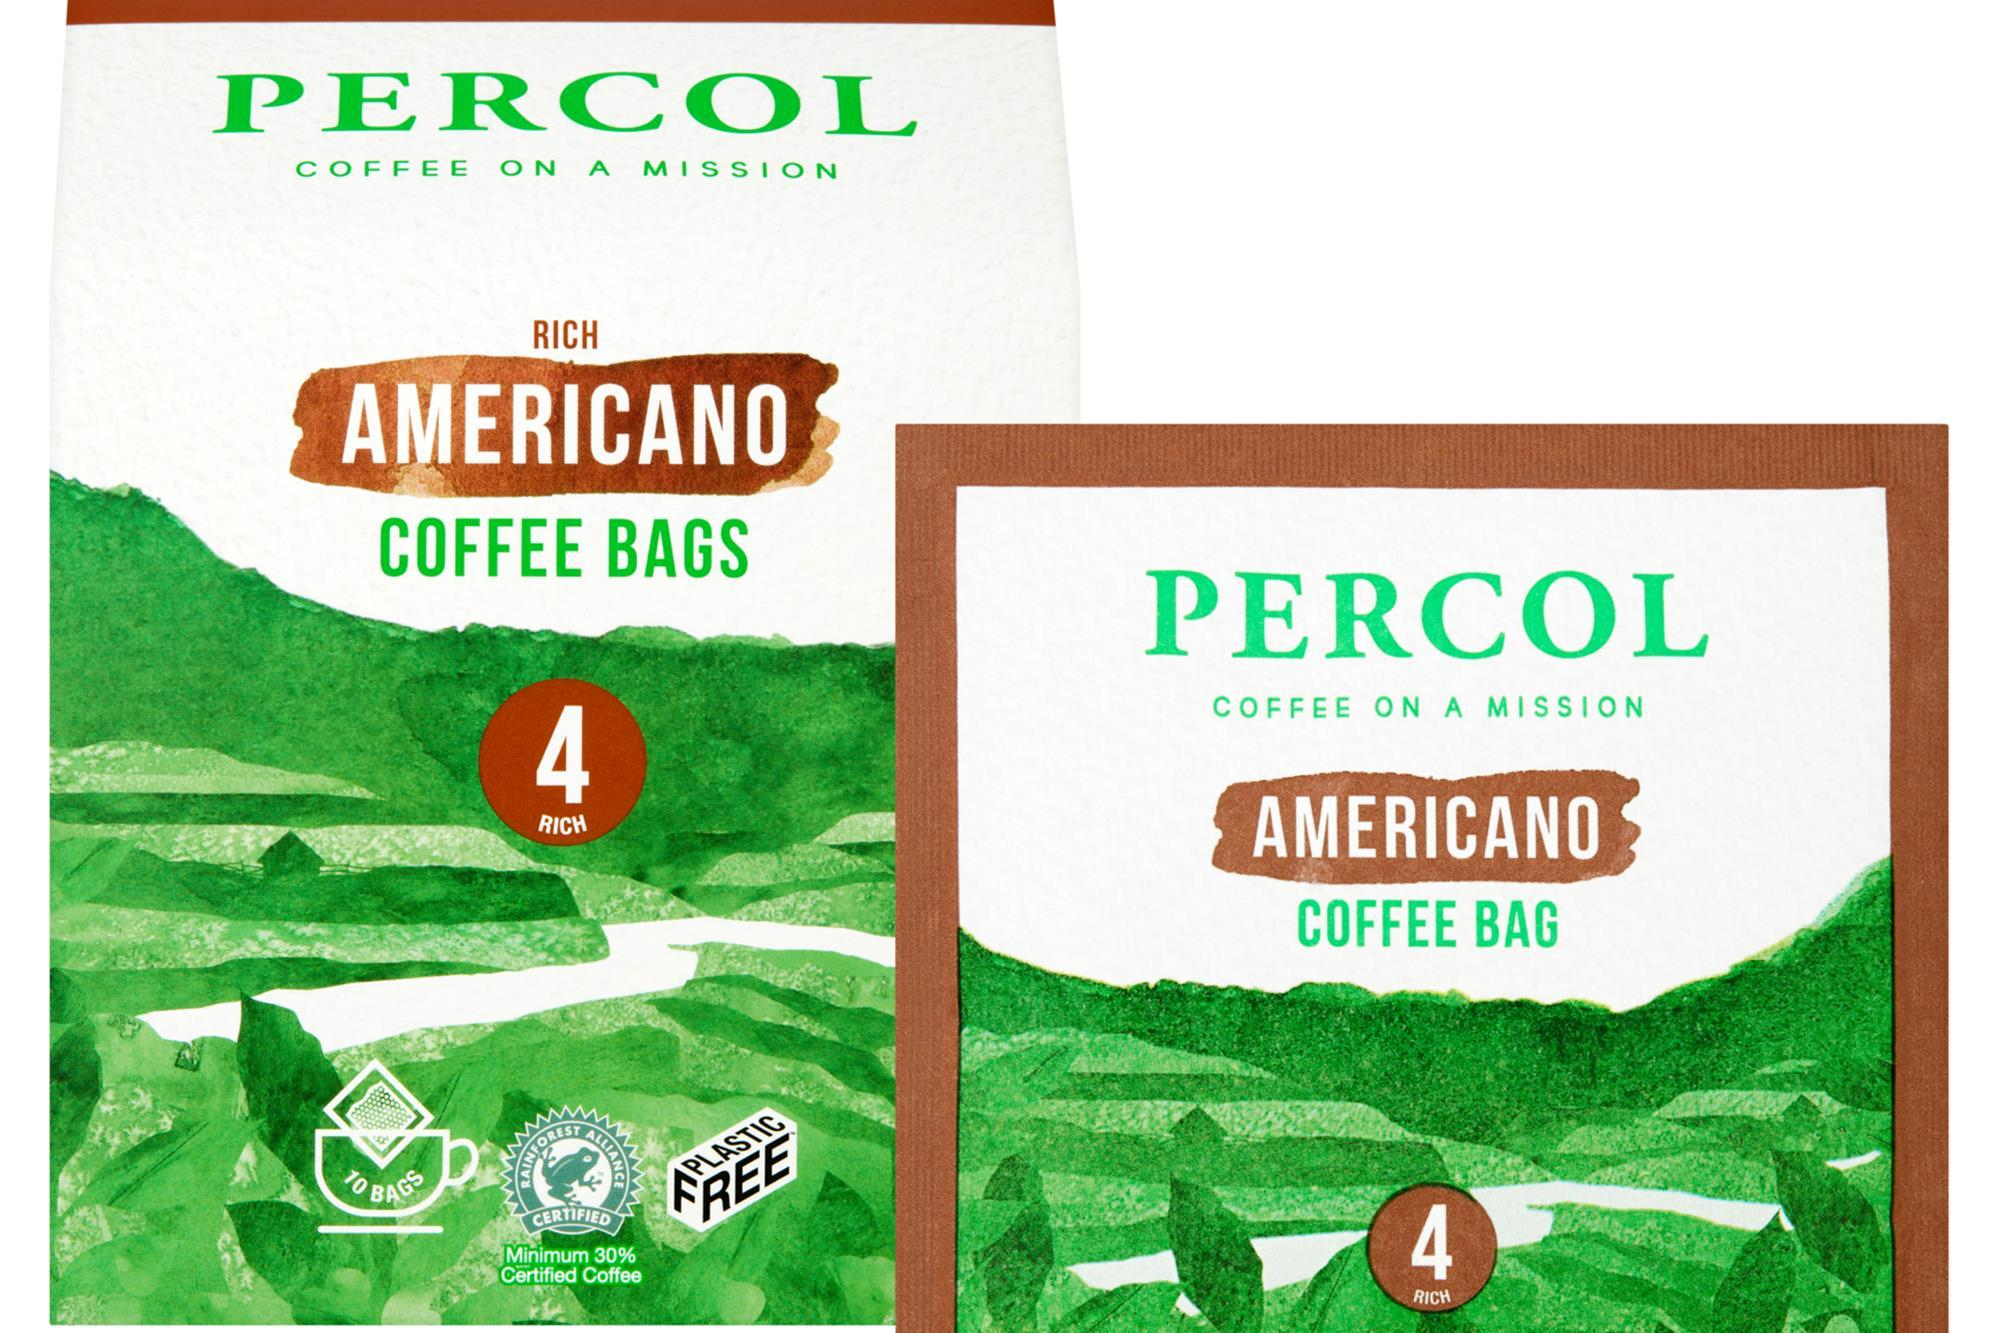 Percol Claims World First With Plastic Free Coffee Bag